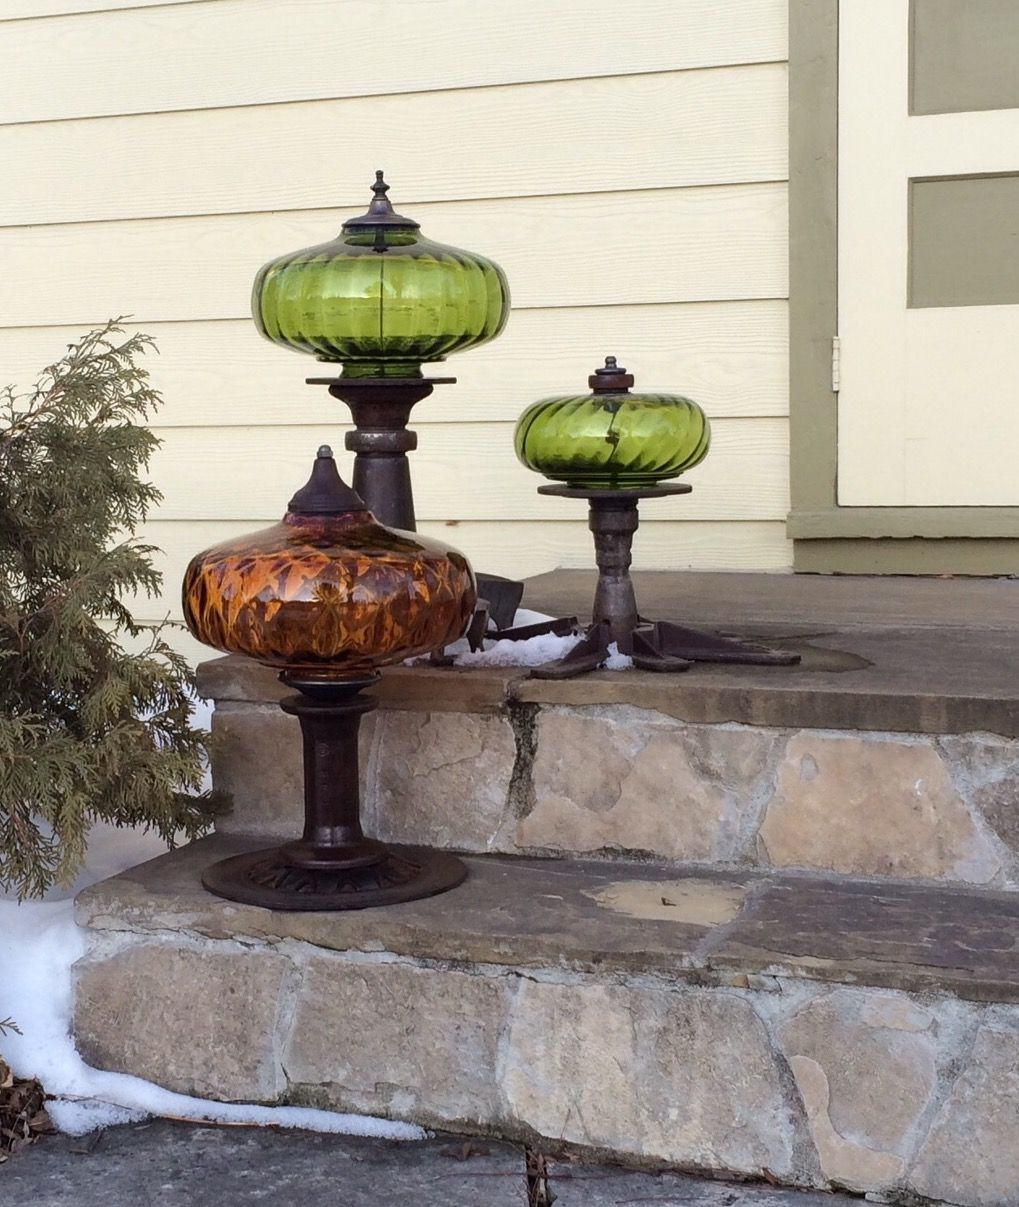 Repurposed Garden Art Created Using Vintage Lamps